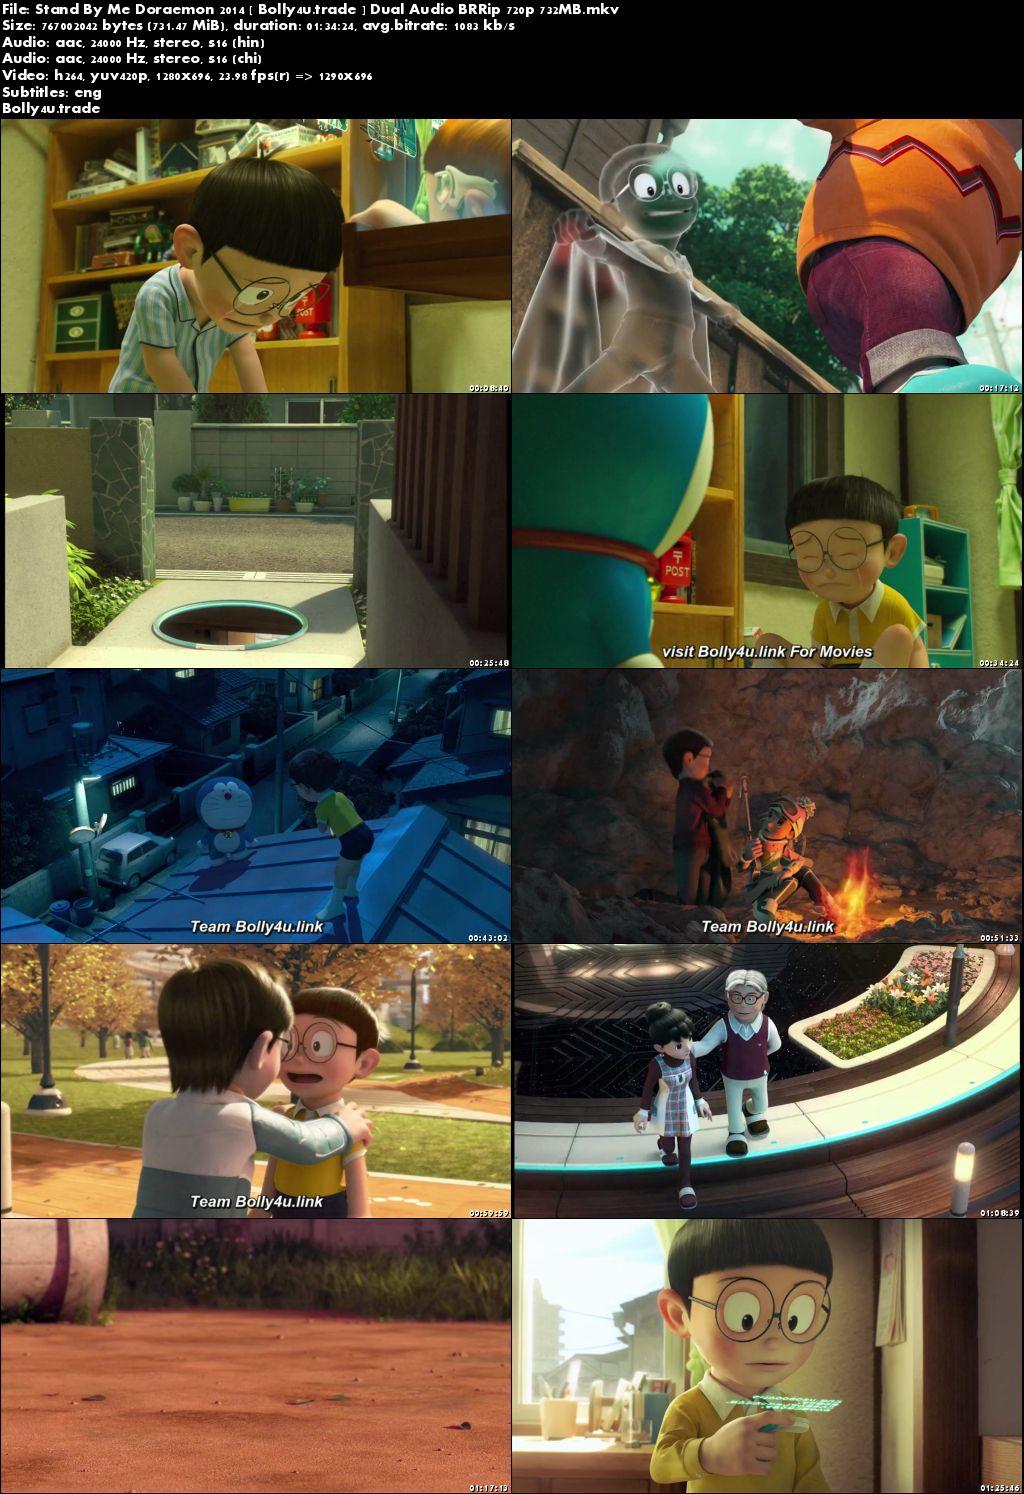 Stand By Me Doraemon 2014 BRRip 300MB Hindi Dual Audio 480p Download